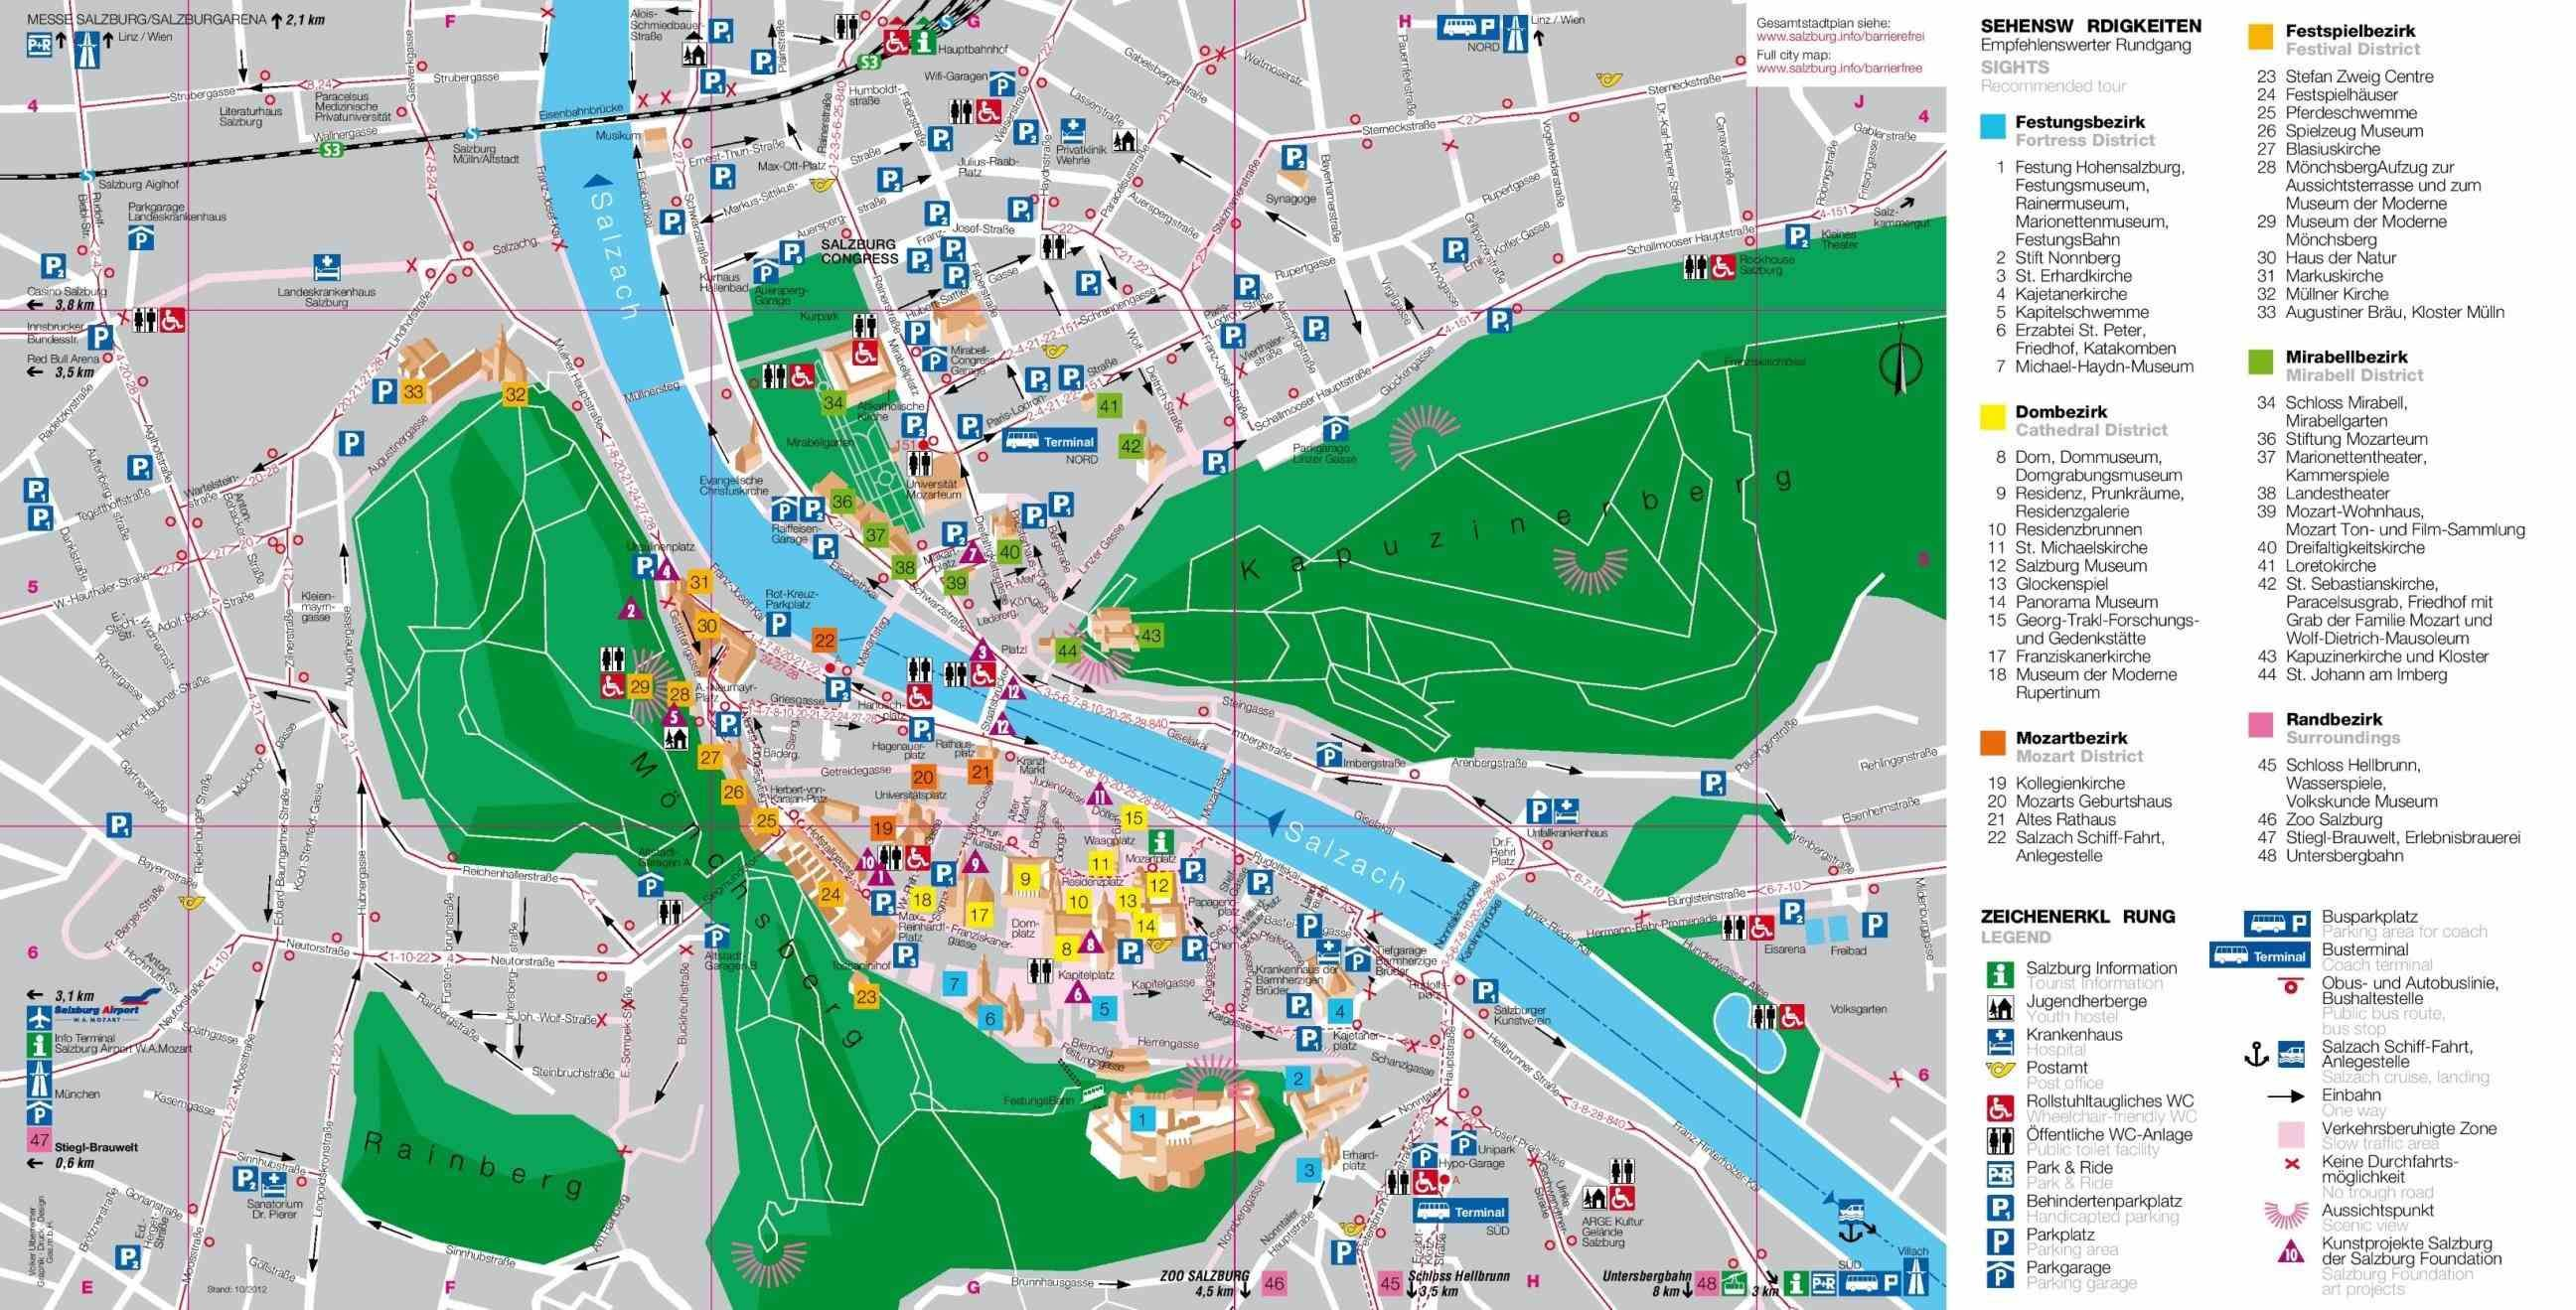 Salzburg austria mountains area hotels locate on a based popularity salzburg austria mountains area hotels locate on a based popularity price or availability hammerauer strasse nr gumiabroncs Image collections